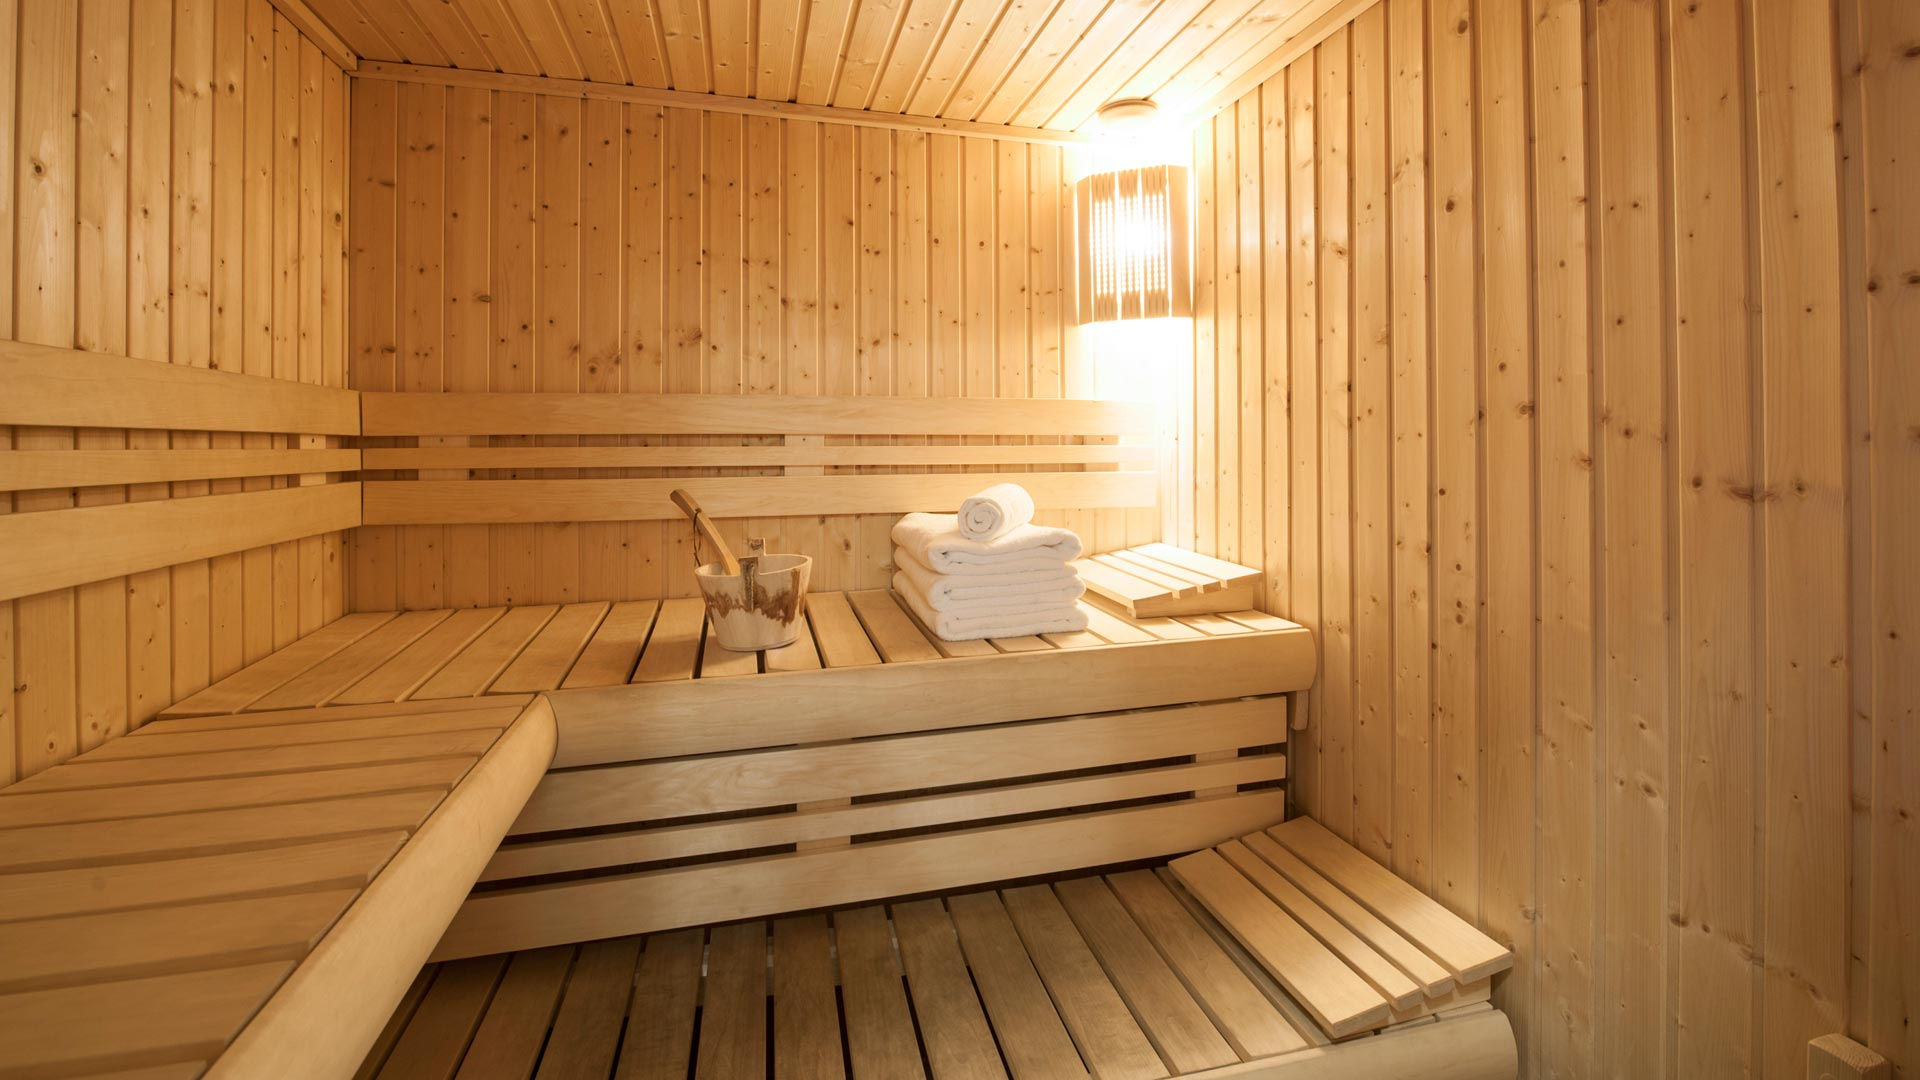 Sauna in Les Balmes Apartment in Ste Foy